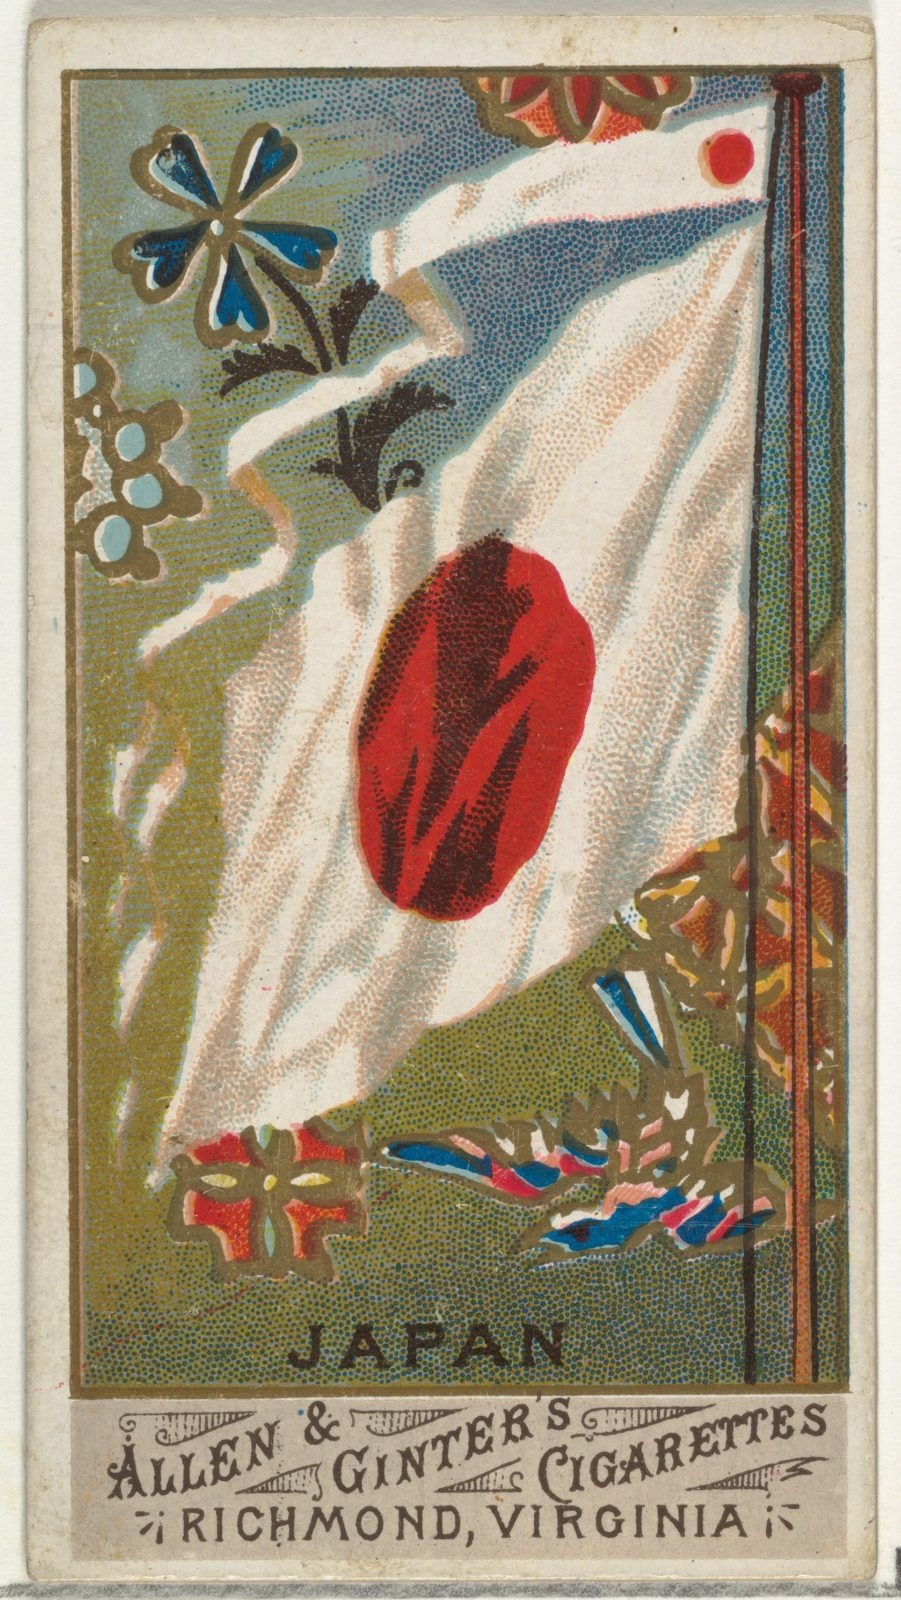 Japan, from Flags of All Nations, Series 1 (N9) for Allen & Ginter Cigarettes Brands